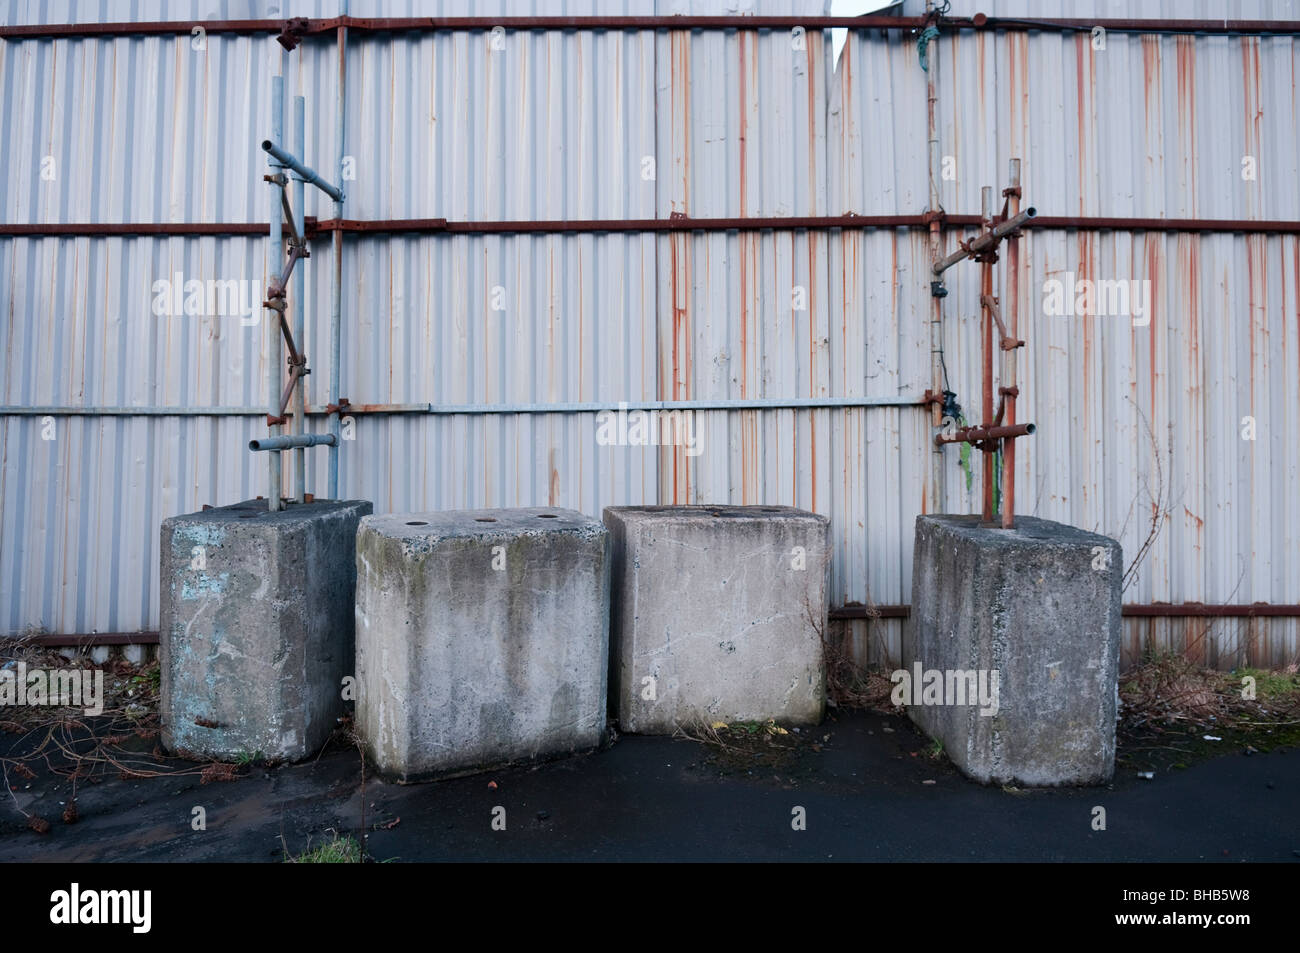 Universal Concrete Blocks (UCBs) at a security barrier in Belfast - Stock Image